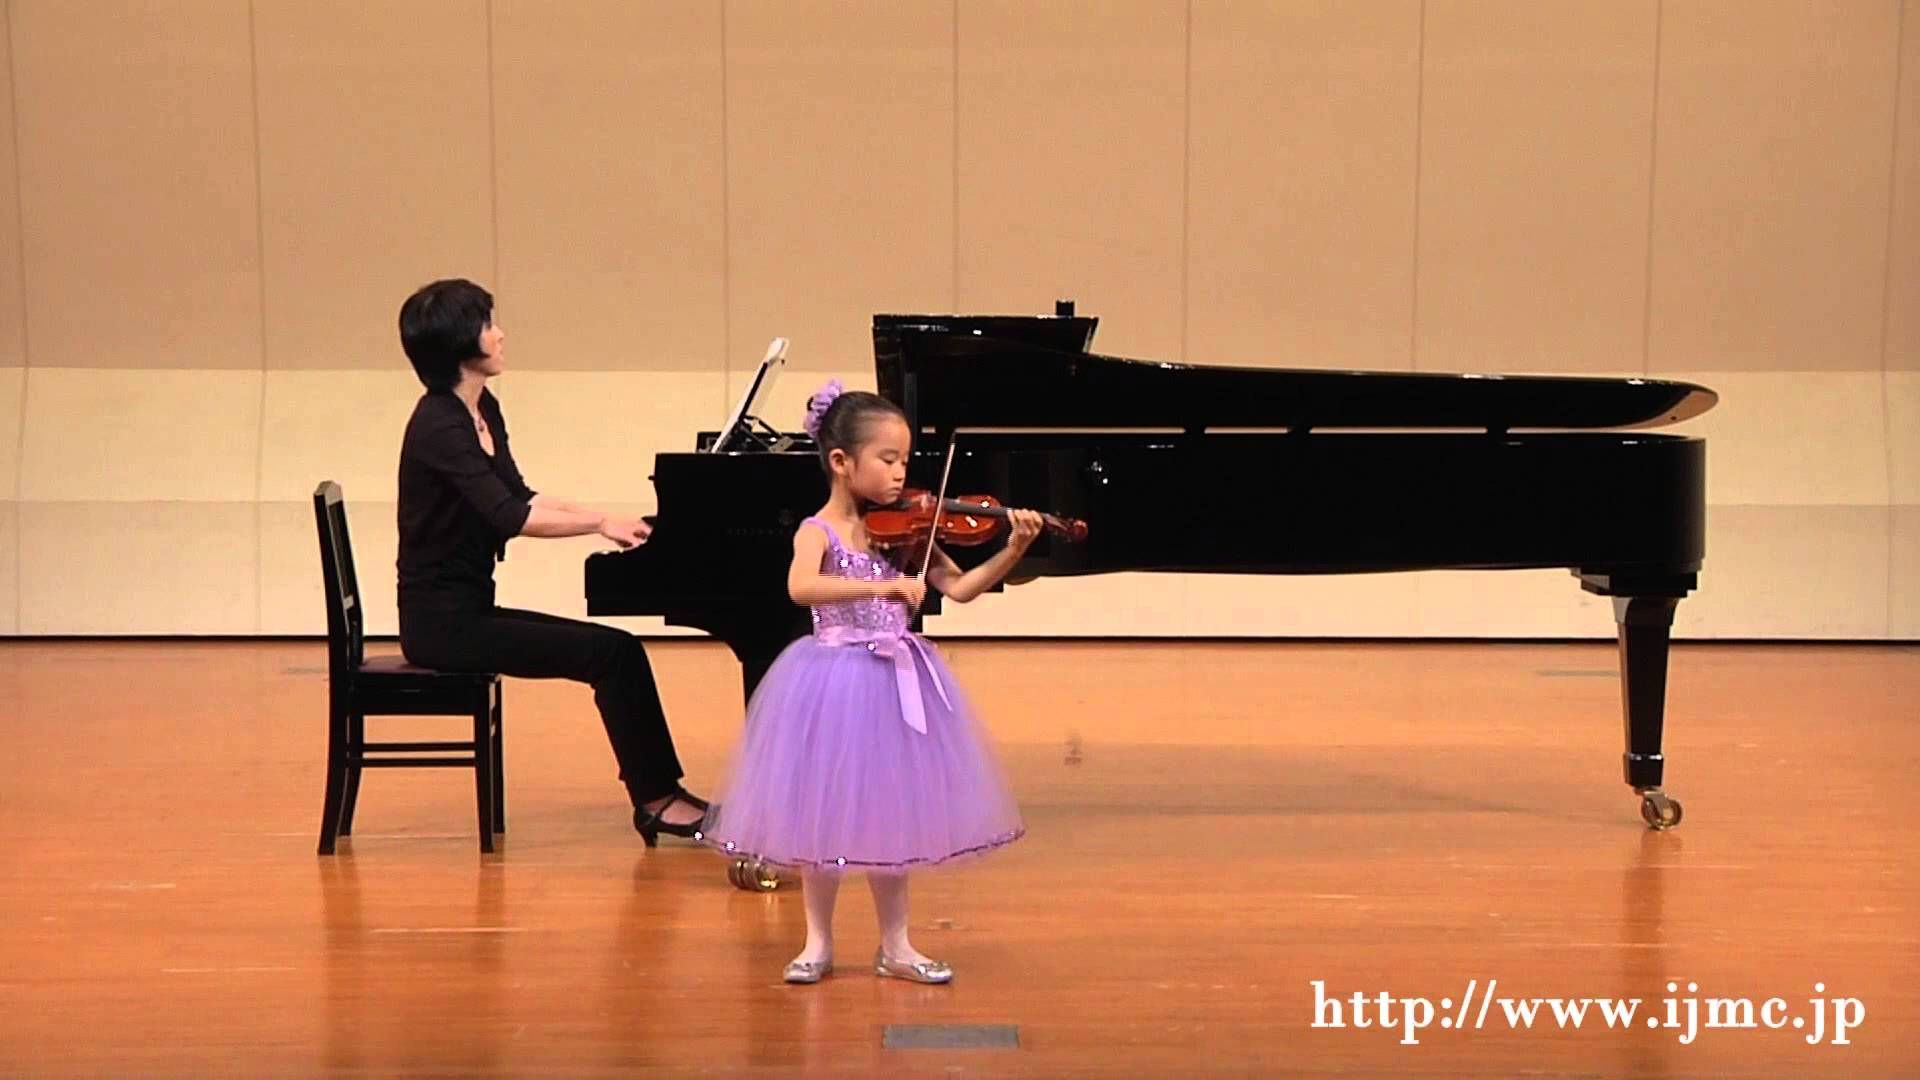 International Junior Music Competition Winner Of The 1st 2nd Grade Division See More Of This Young Violinist From Mrim Music Competition Violinists Violinist